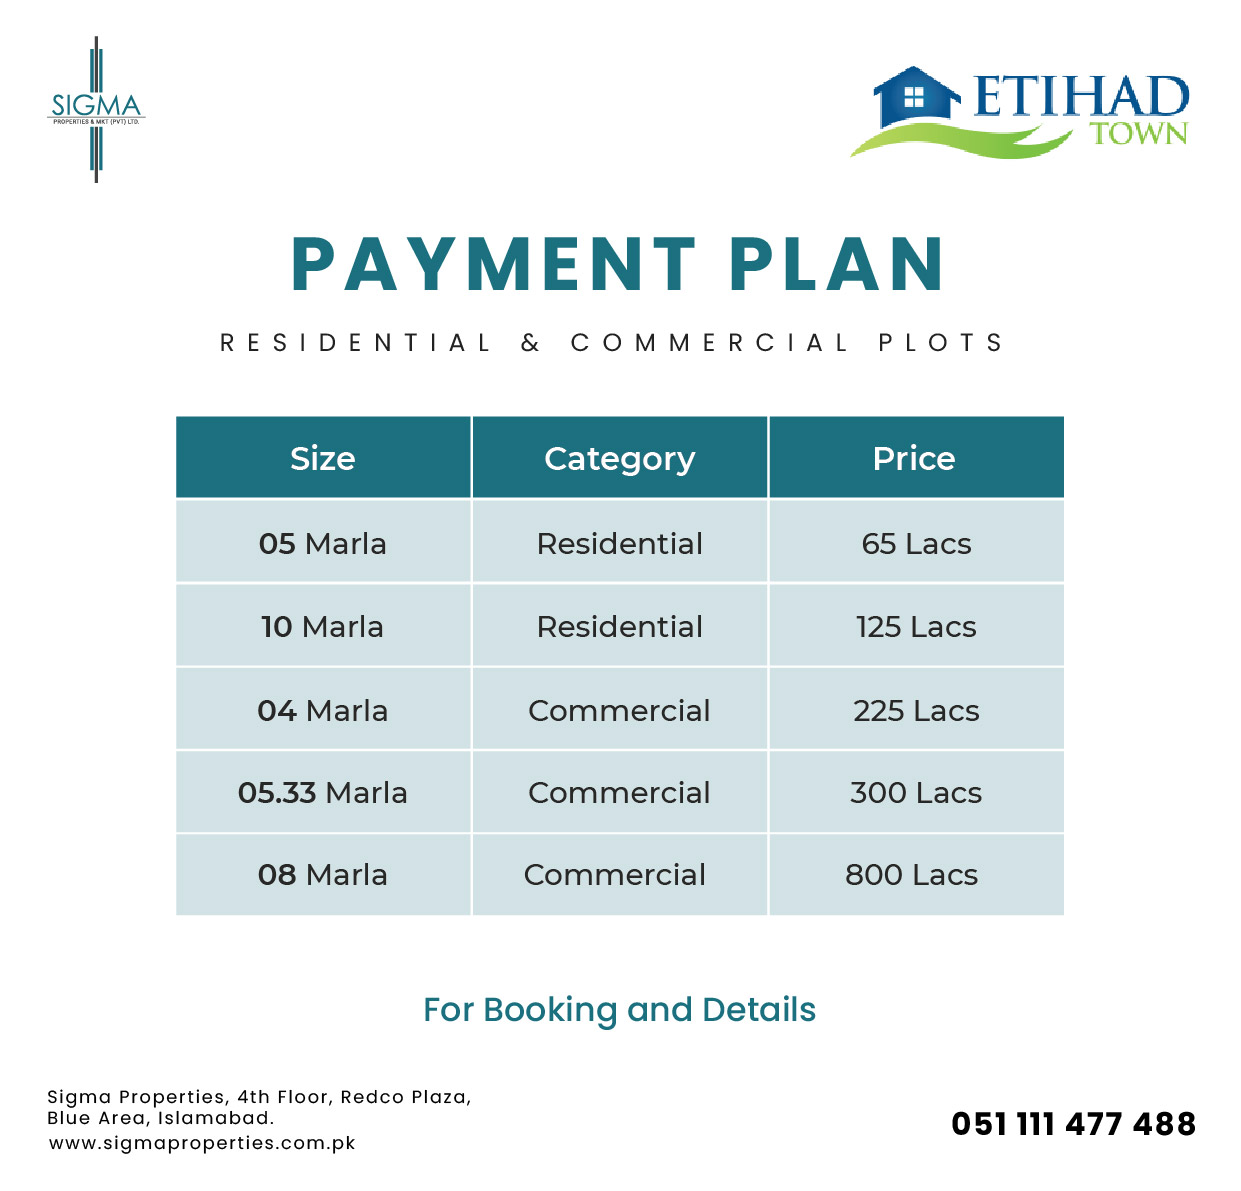 Etihad Town phase 2 payment plan